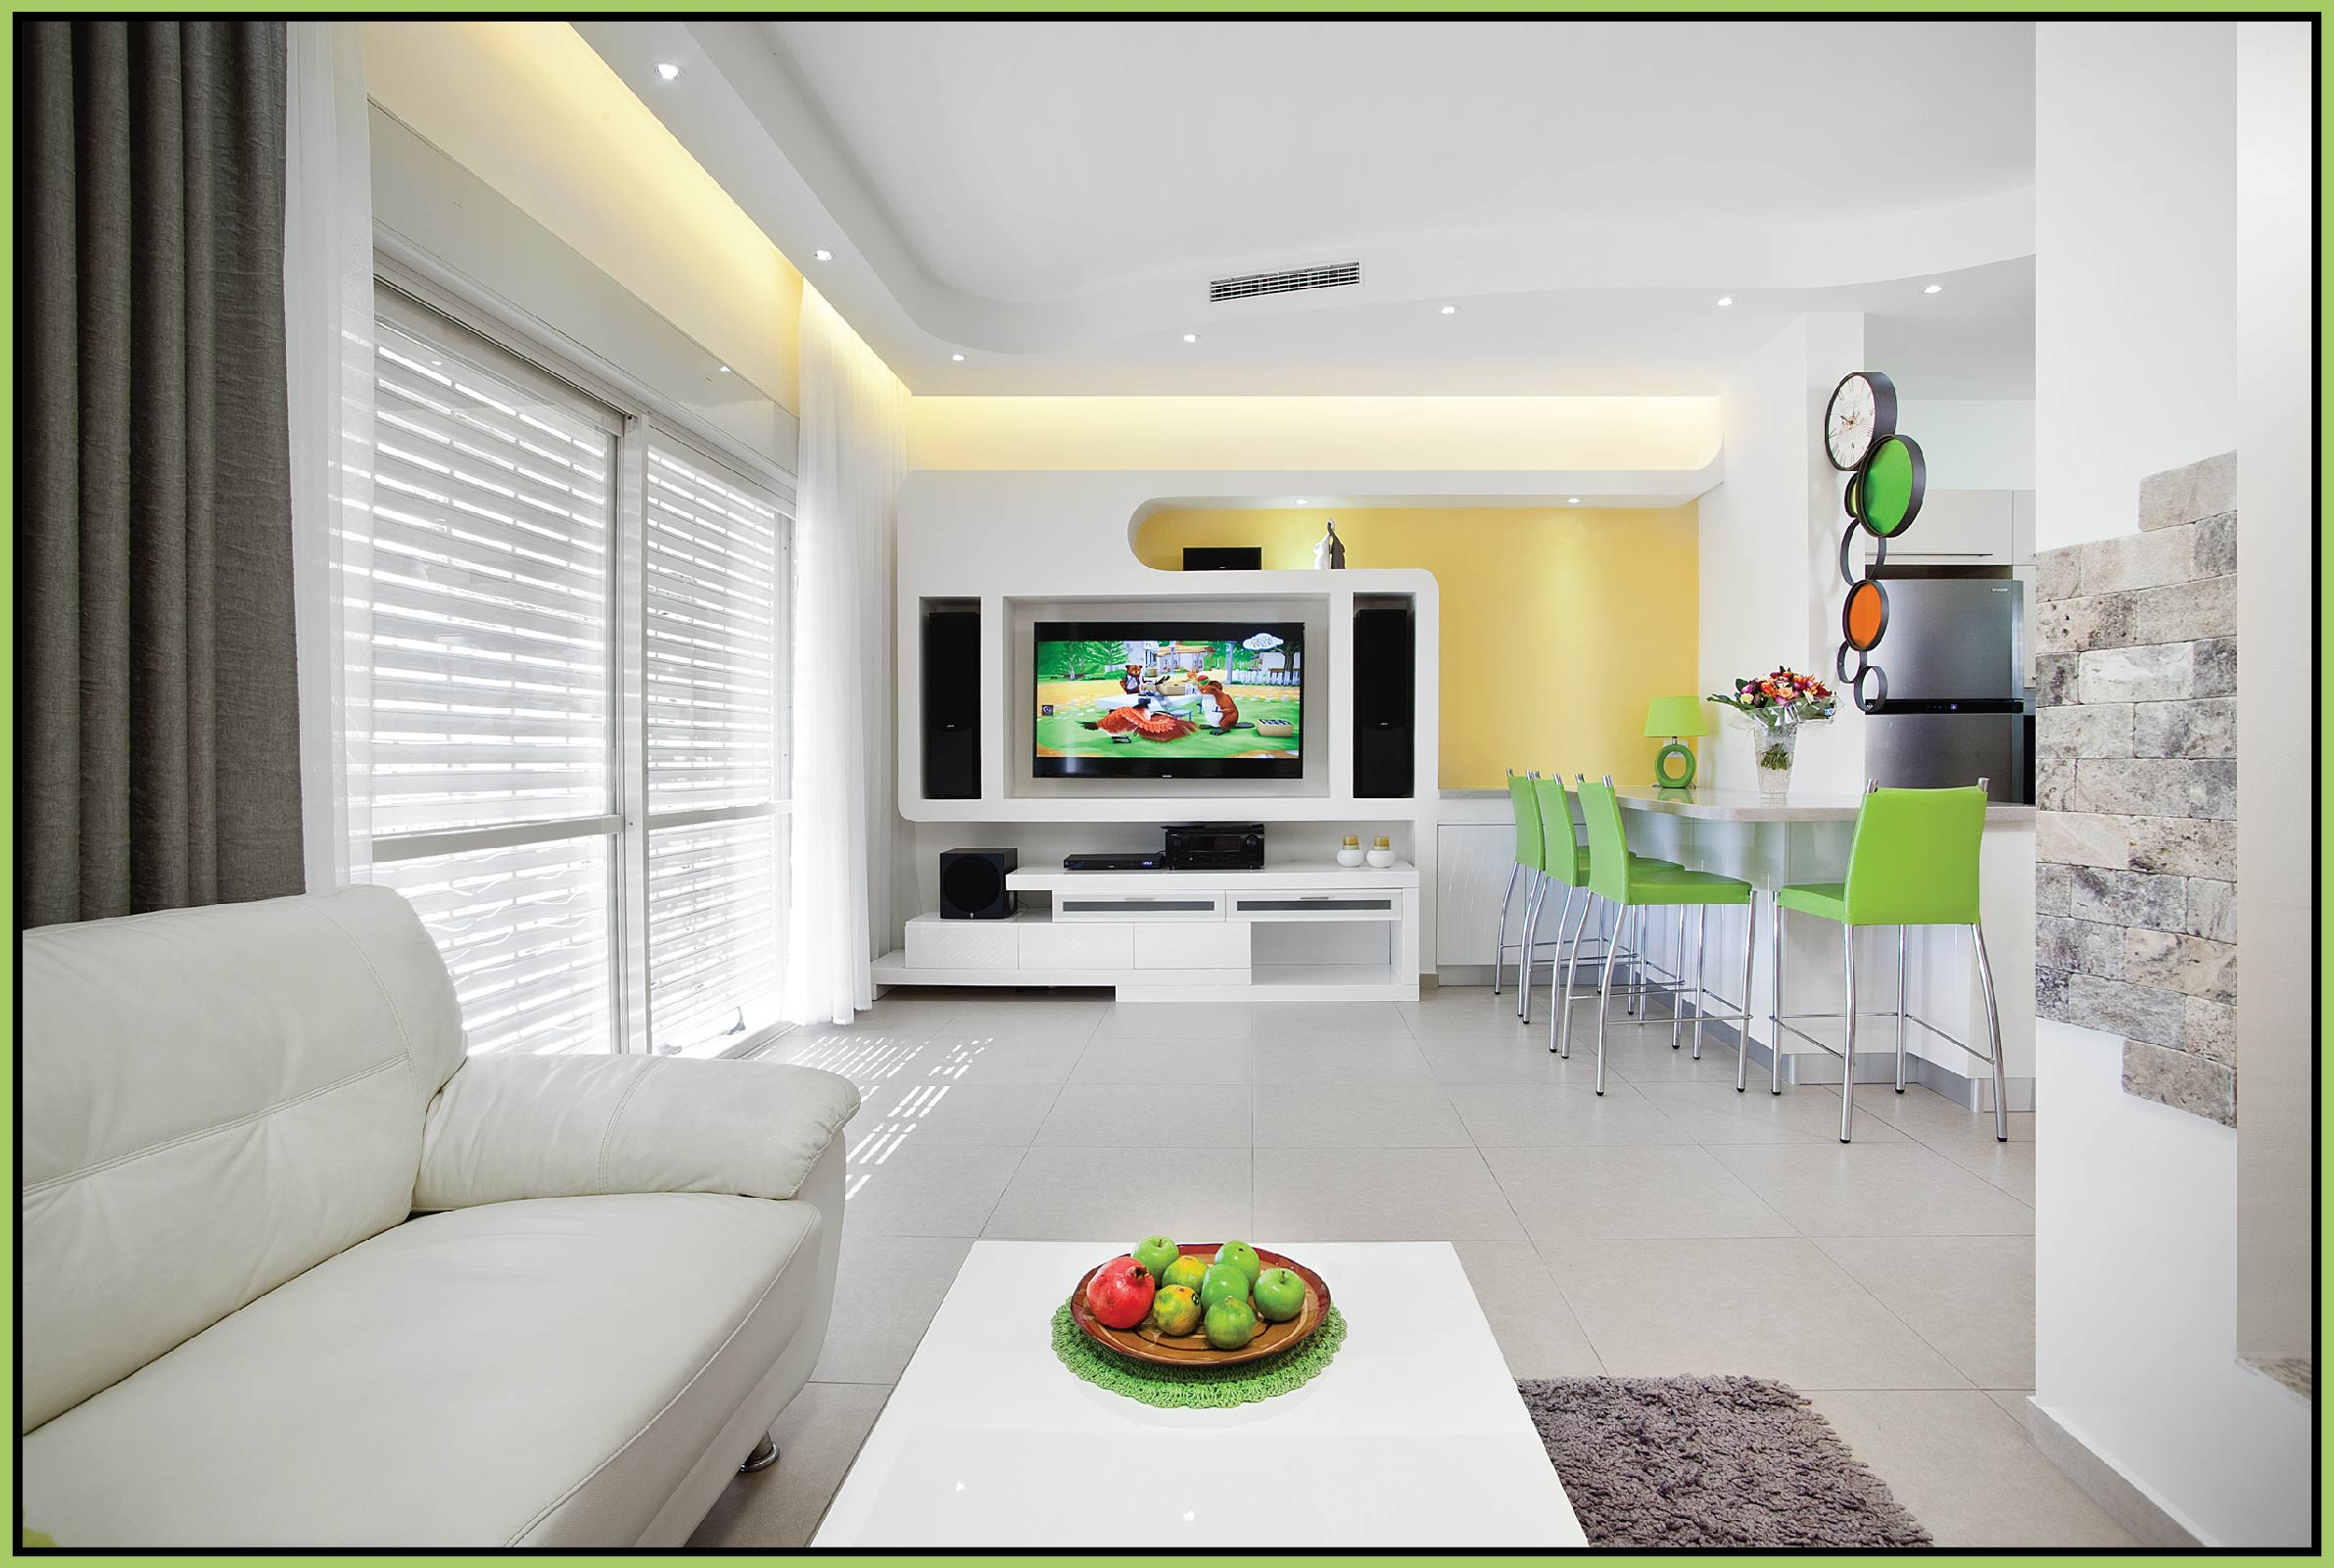 Design of plaster niches for a TV